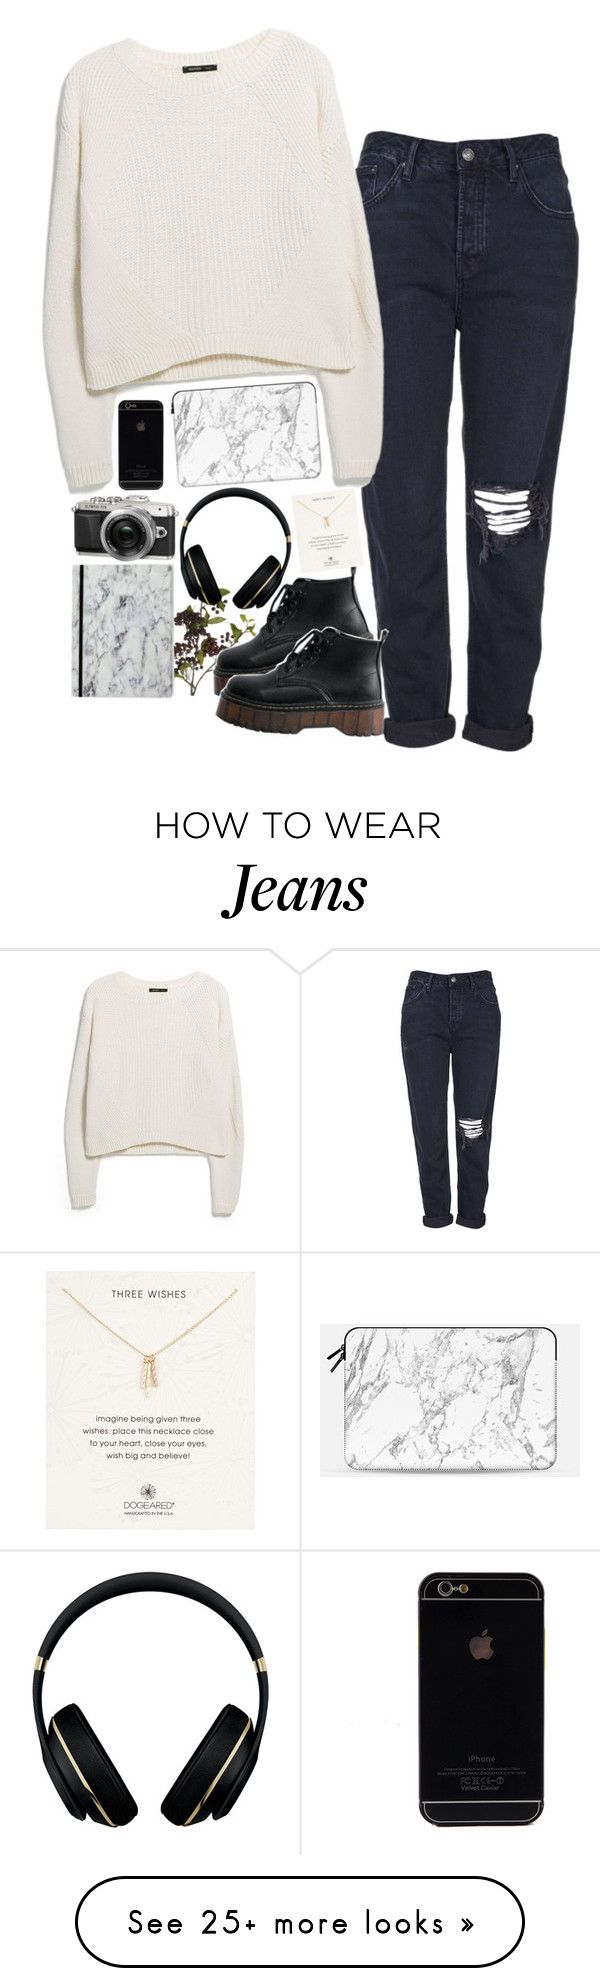 """CASETIFY 5"" by sisistyle on Polyvore featuring OKA, Topshop, MANGO, Casetify, Dogeared, Alexander Wang and Retrò"